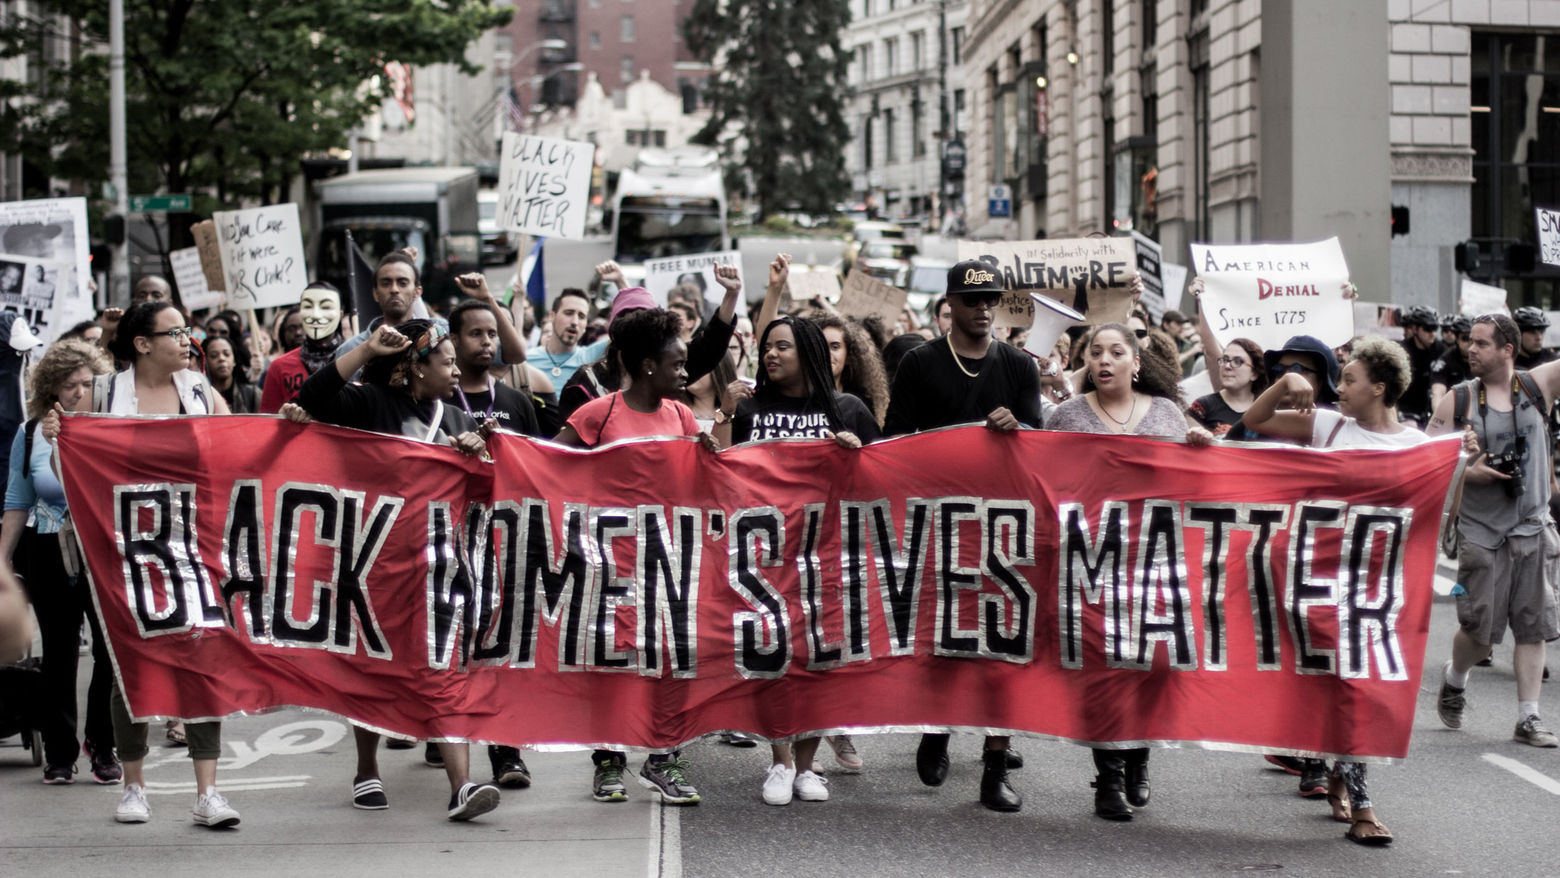 Black womens lives matter